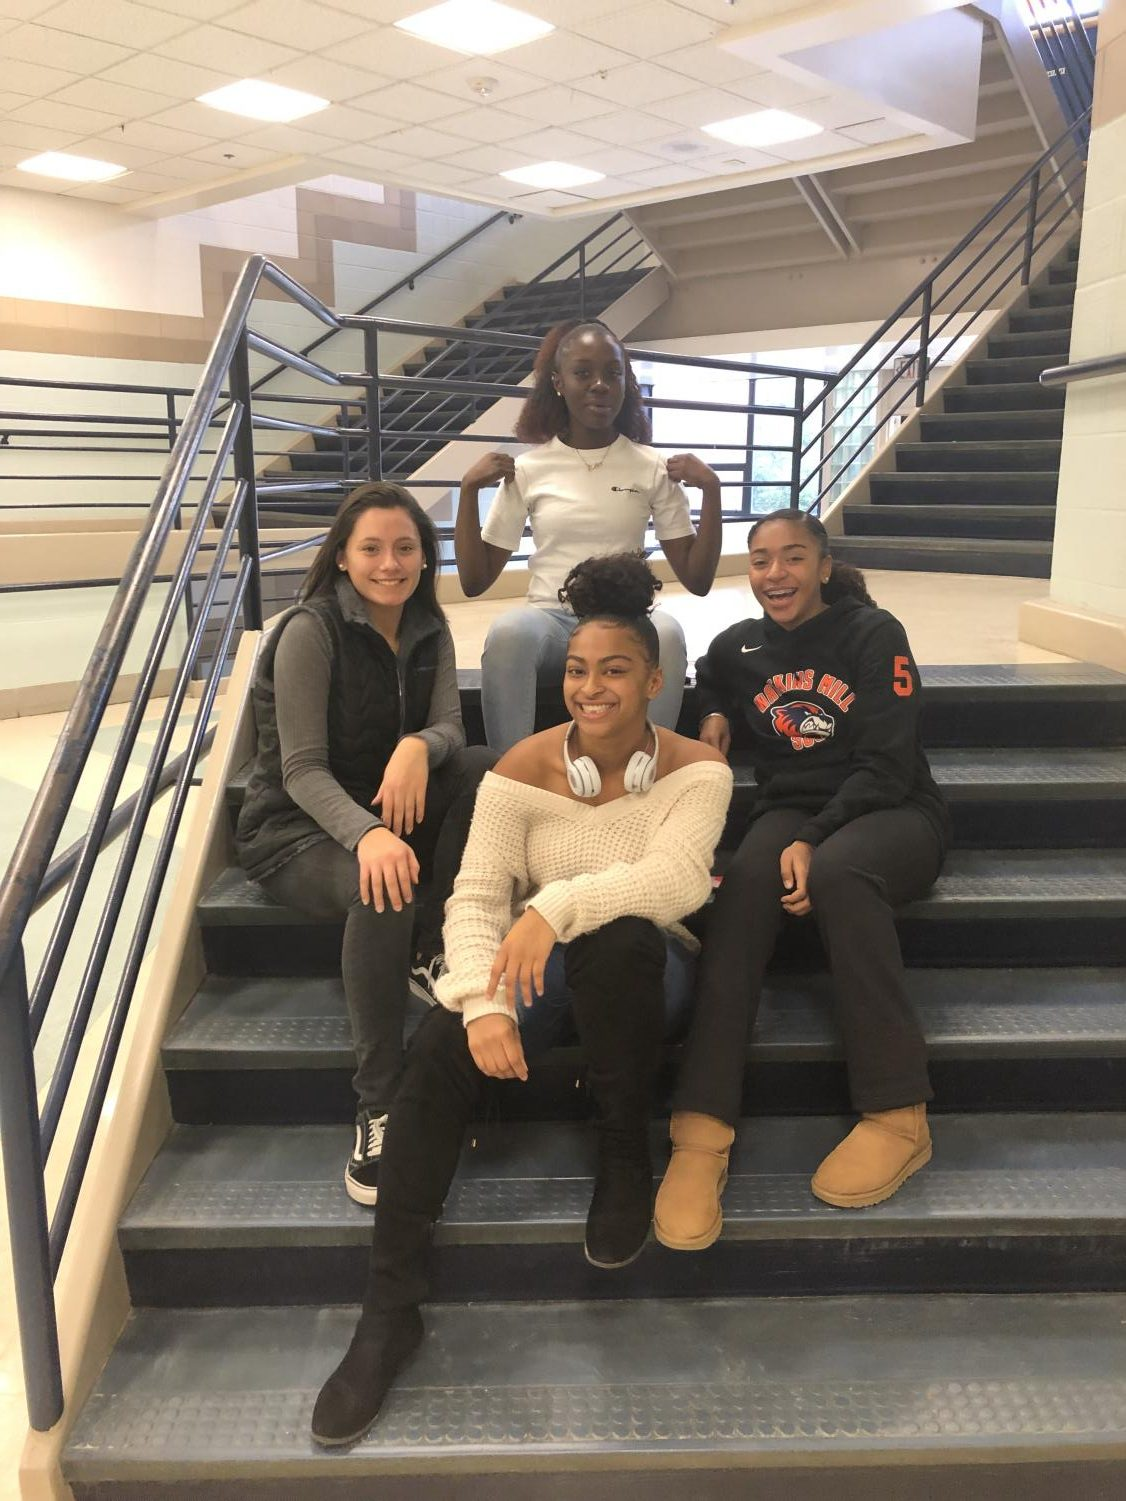 Senior Janice Asabere with dominant female athletes. From right to left, senior Ana Rodriguez, senior Yesenia Albright, and sophomore Jaden Gaboton